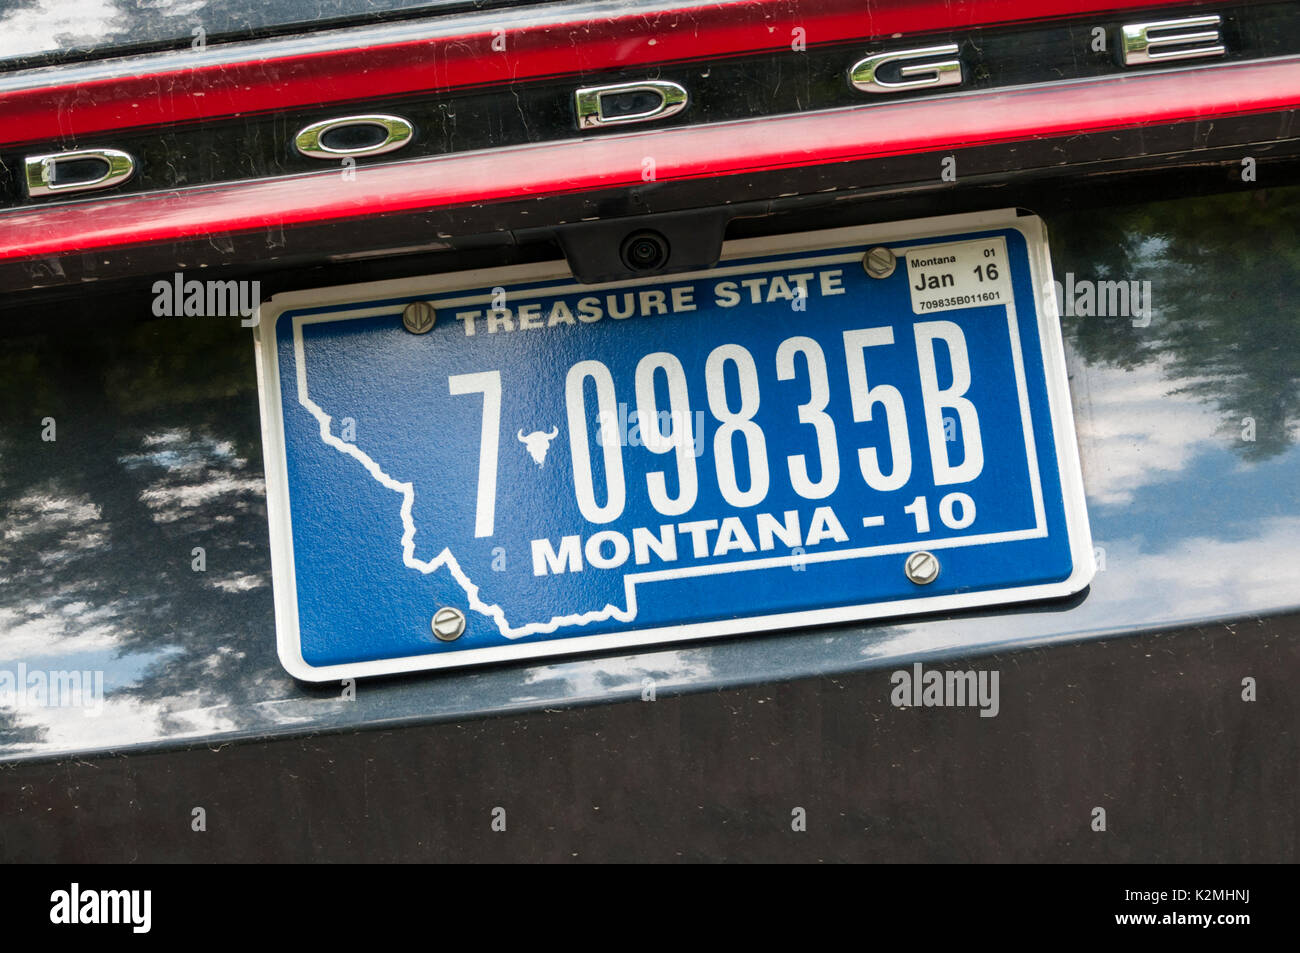 Montana license plate on a Dodge vehicle - Stock Image